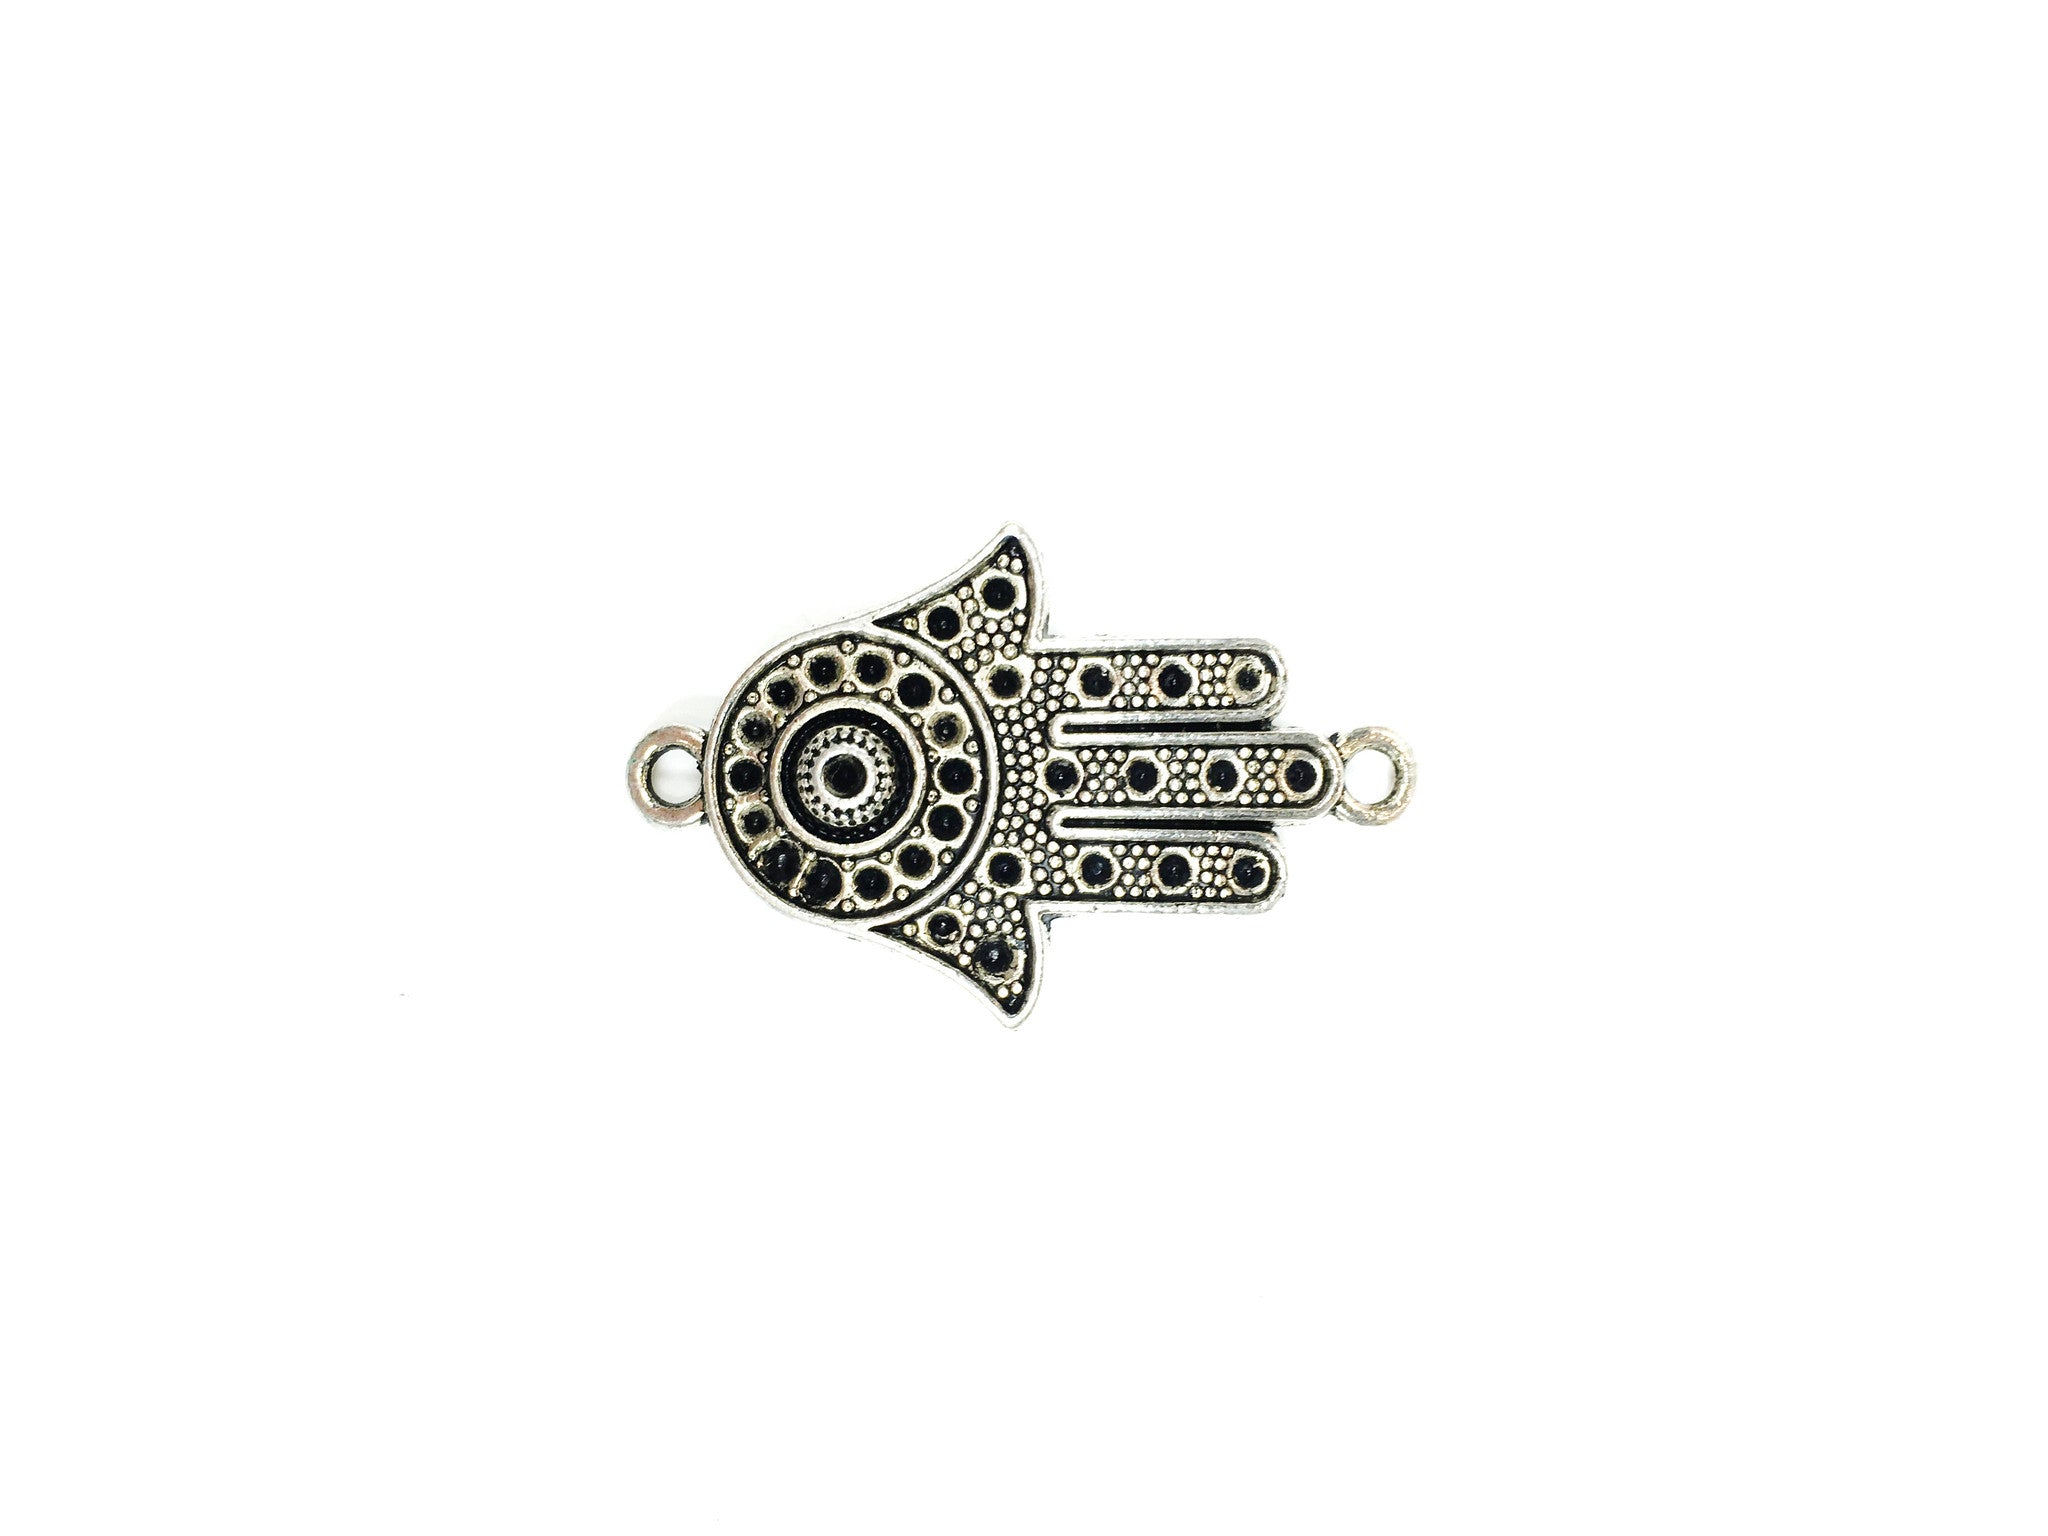 Silver Pewter 22x36mm Hamsa Hand Curved Link - 1 per bag